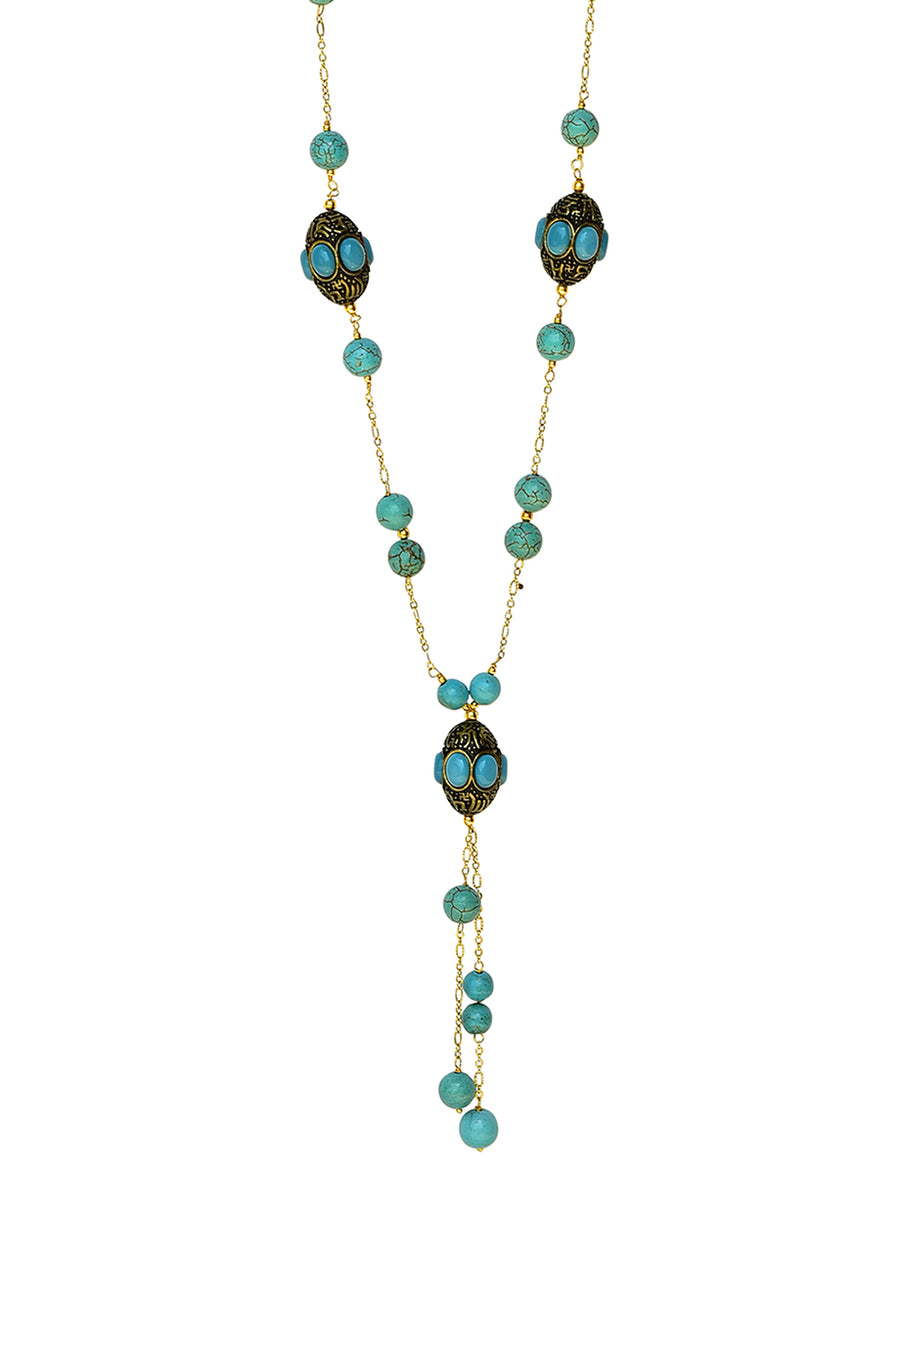 Handcrafted Barrel Bead Tassel Necklace Turquoise Finish